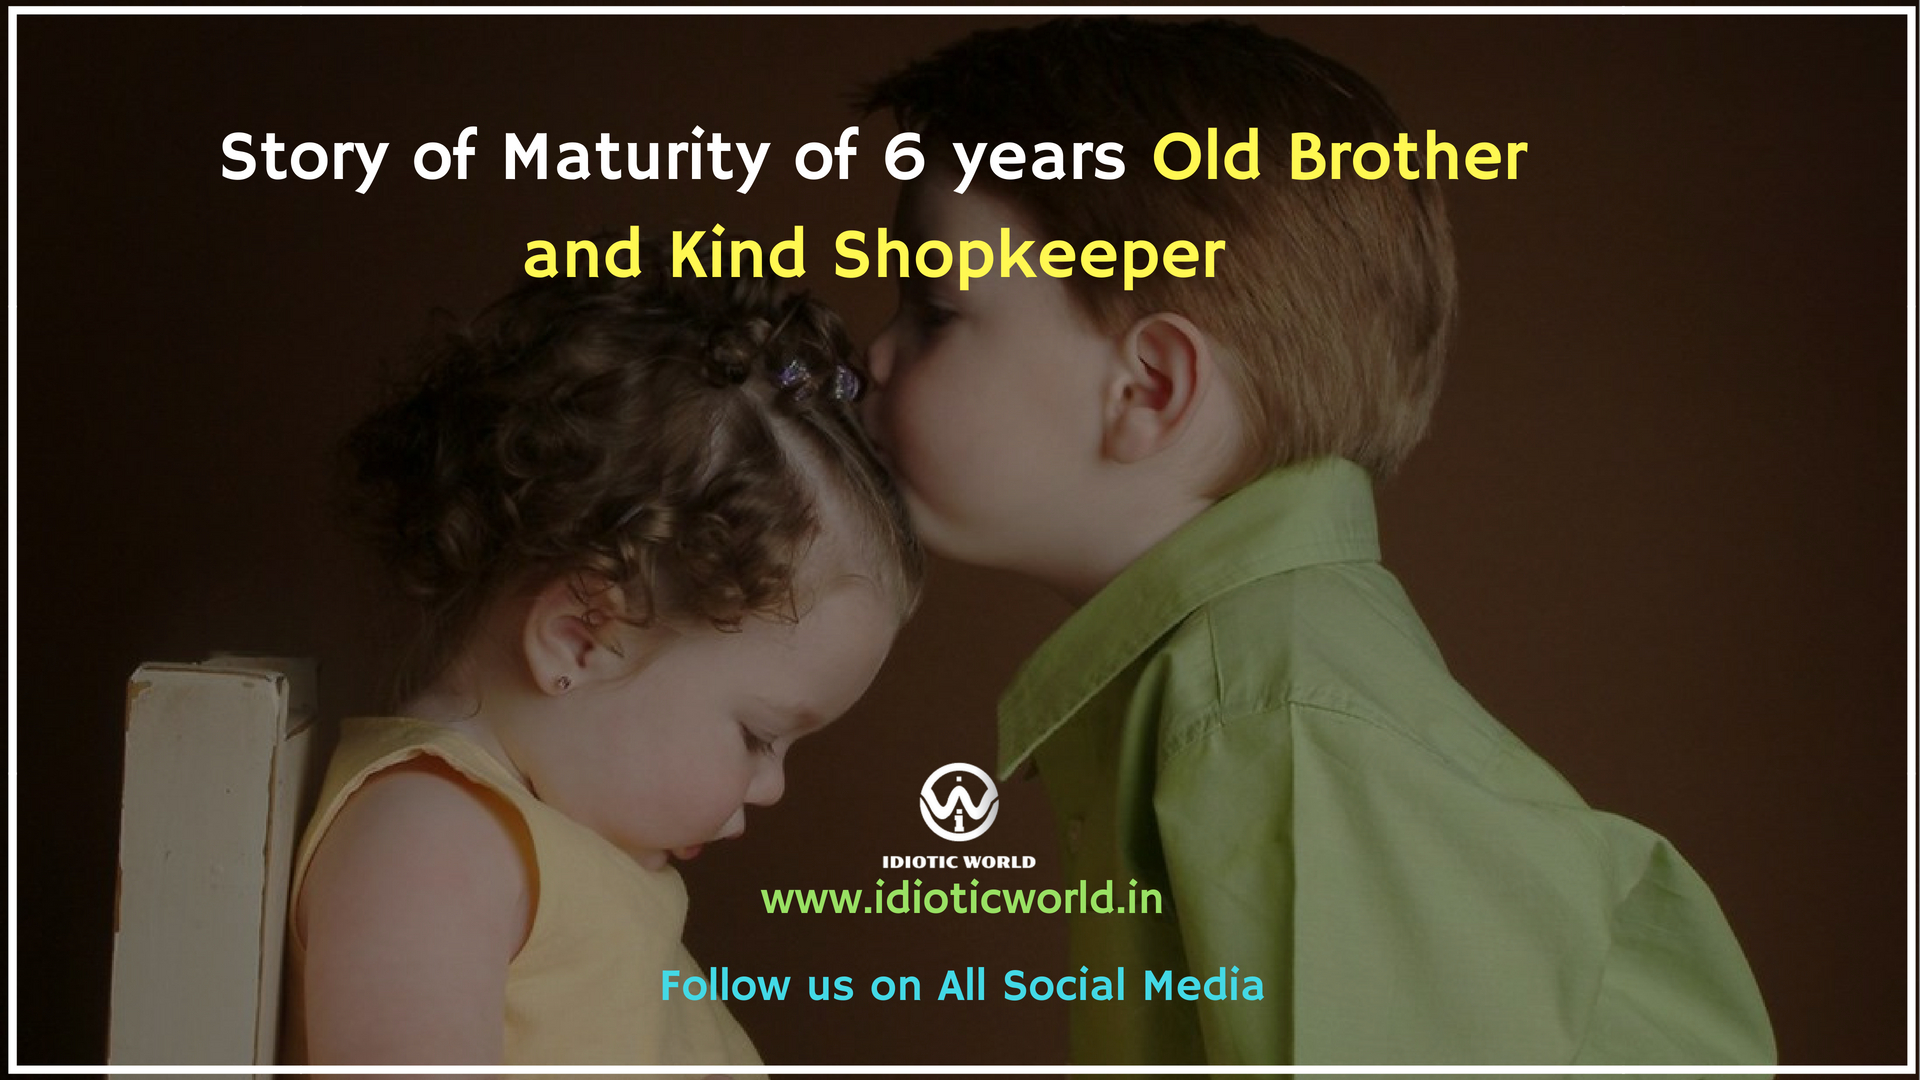 Story of Maturity of 6 years old Brother and Kind Shopkeeper idiotic world blogs